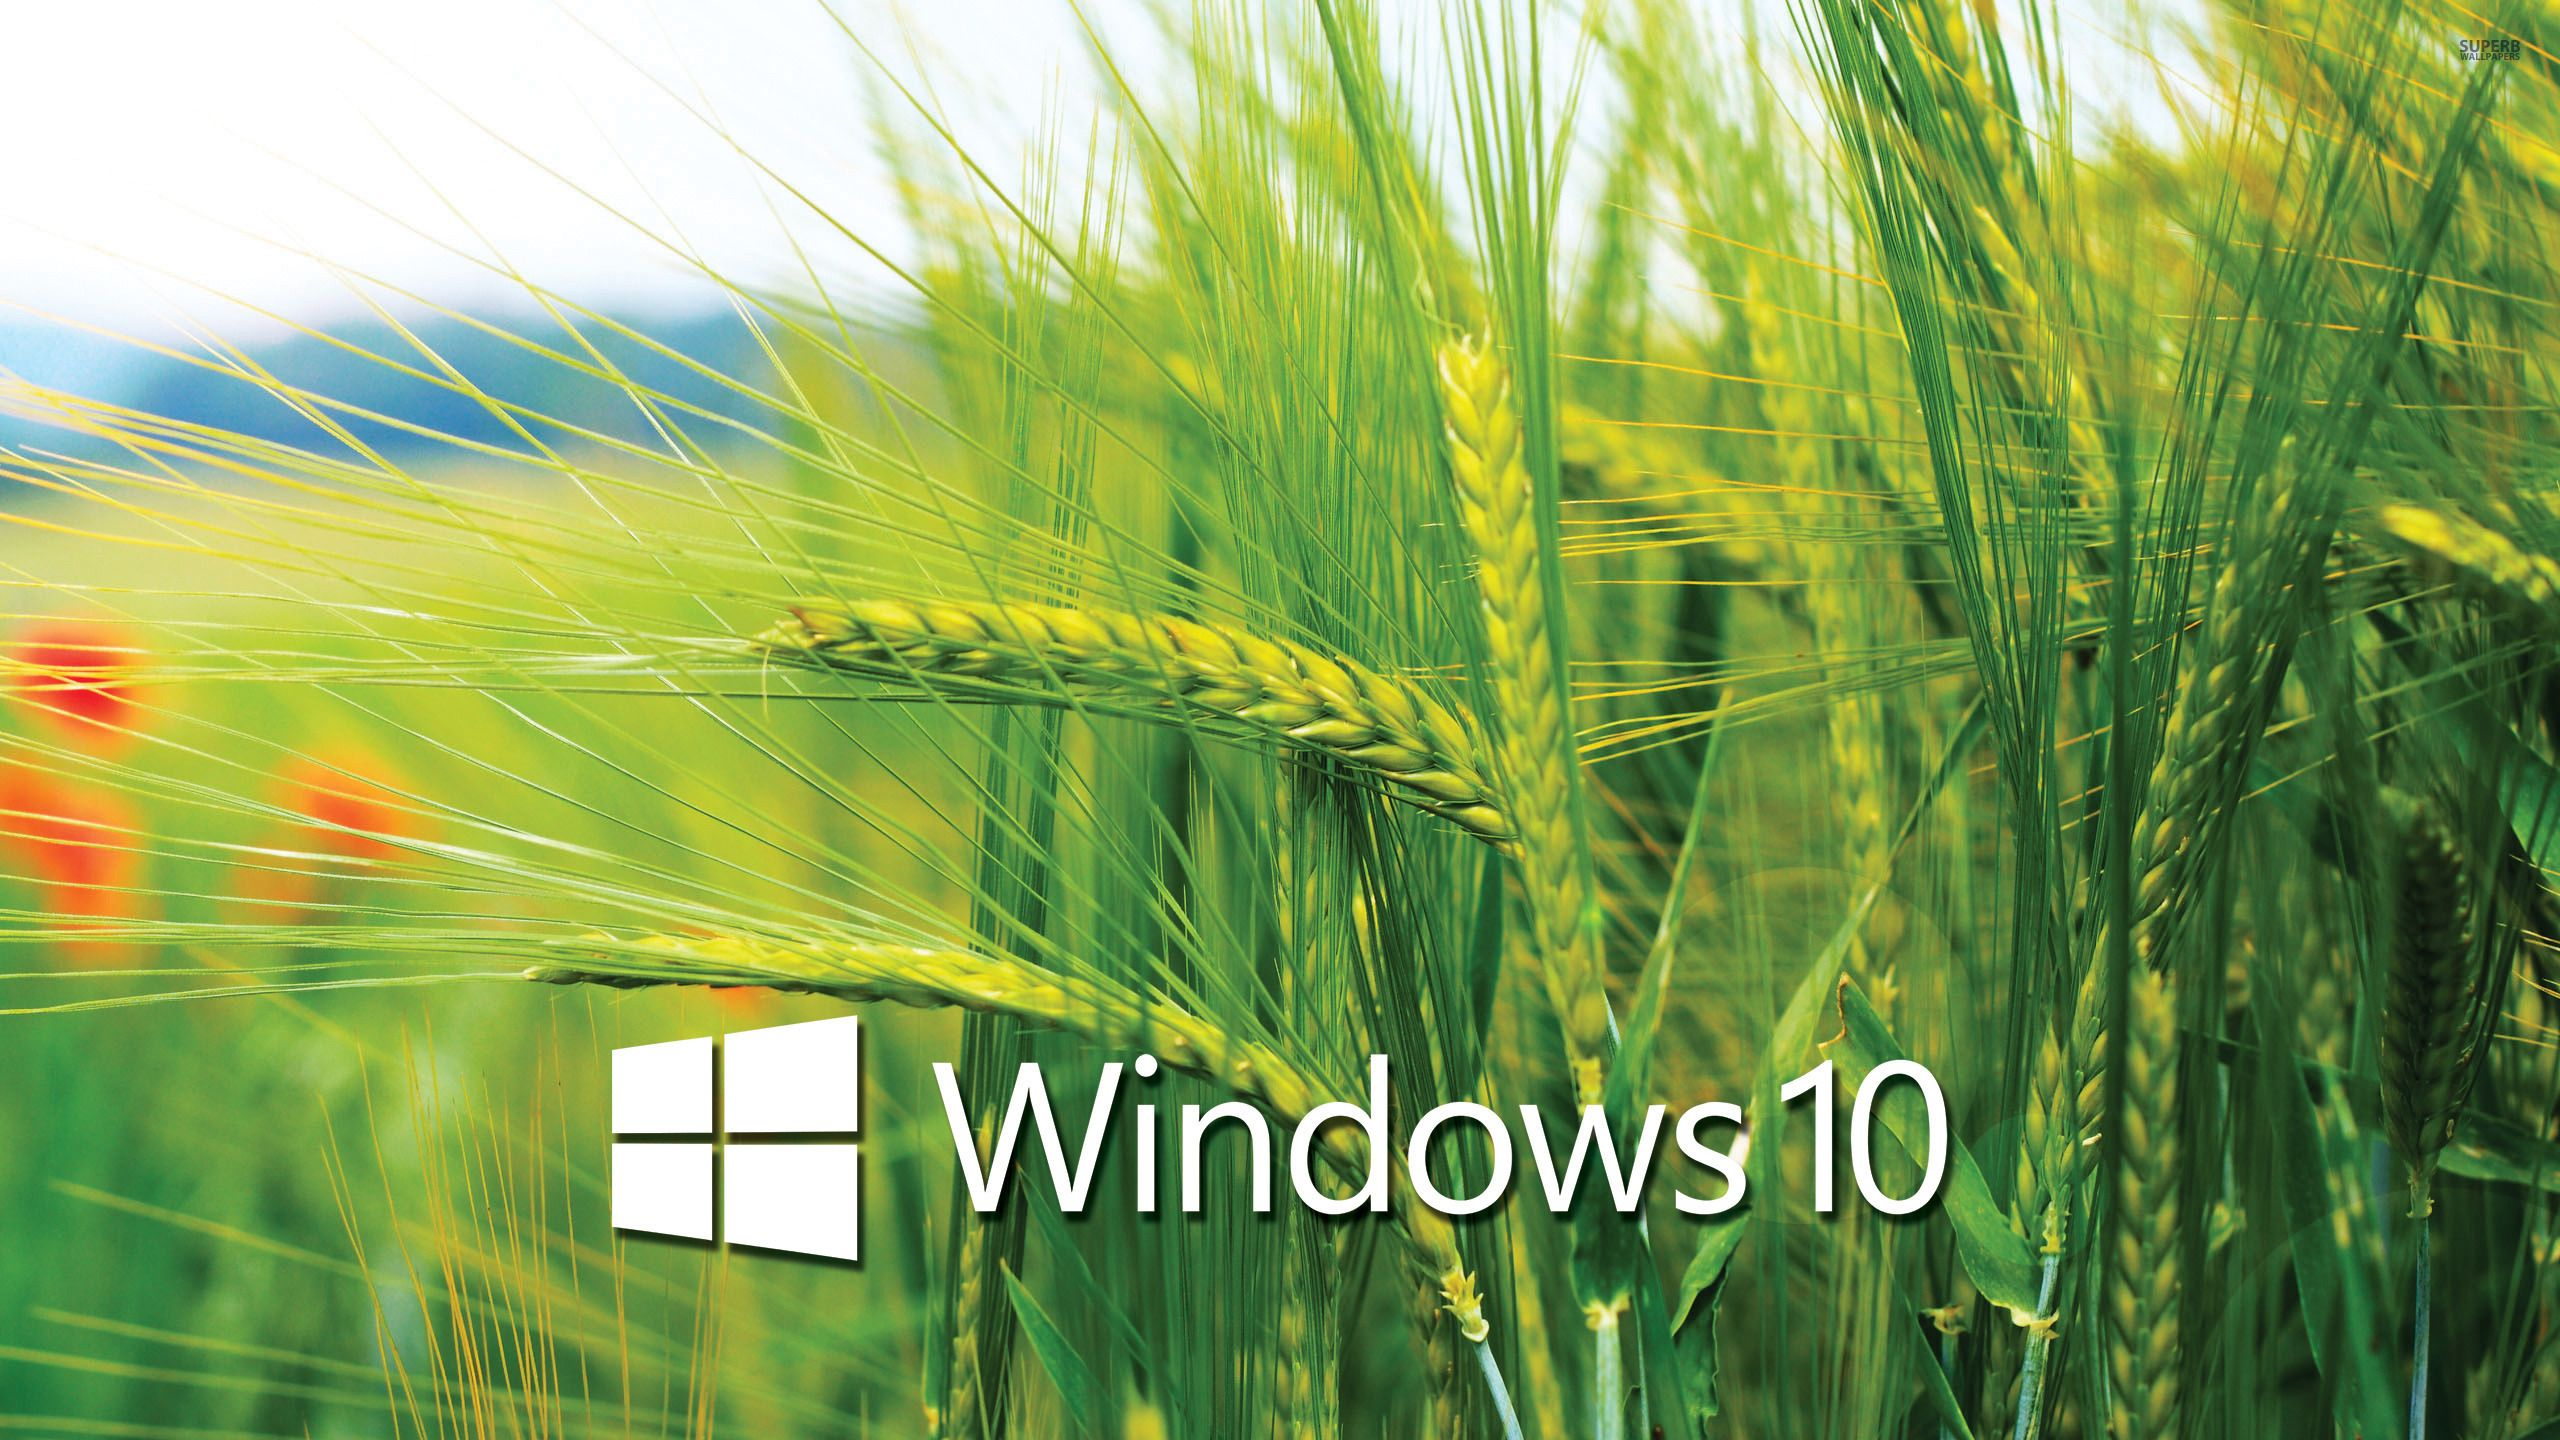 Windows 10 Transparent Wallpapers Hd Wallpapers For Laptop